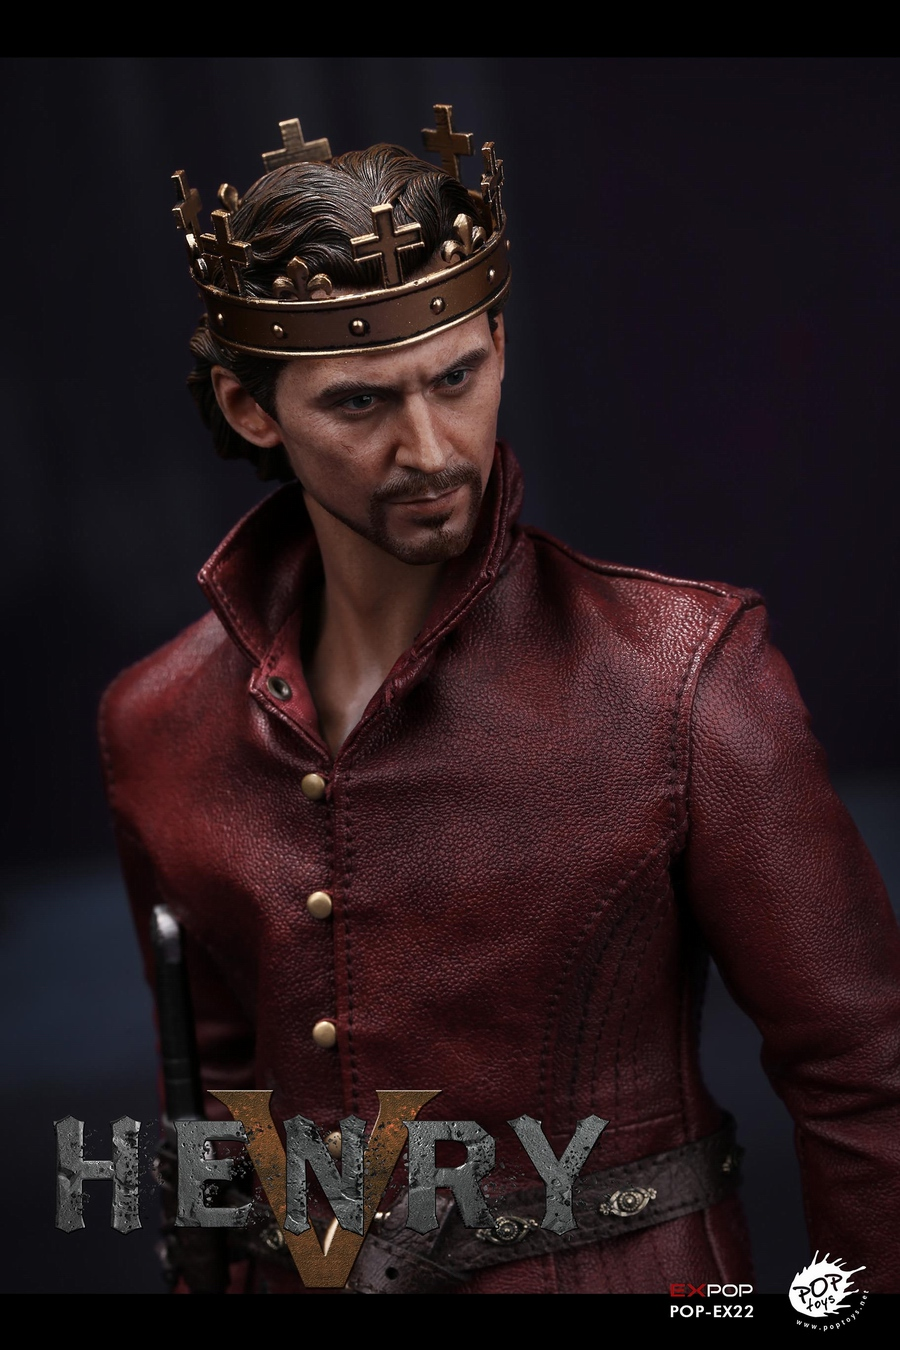 NEW PRODUCT: POPTOYS [WF2019 Shanghai Conference Edition]: 1/6 King of England - Henry V [The Throne Edition] POP-EX22 17592110